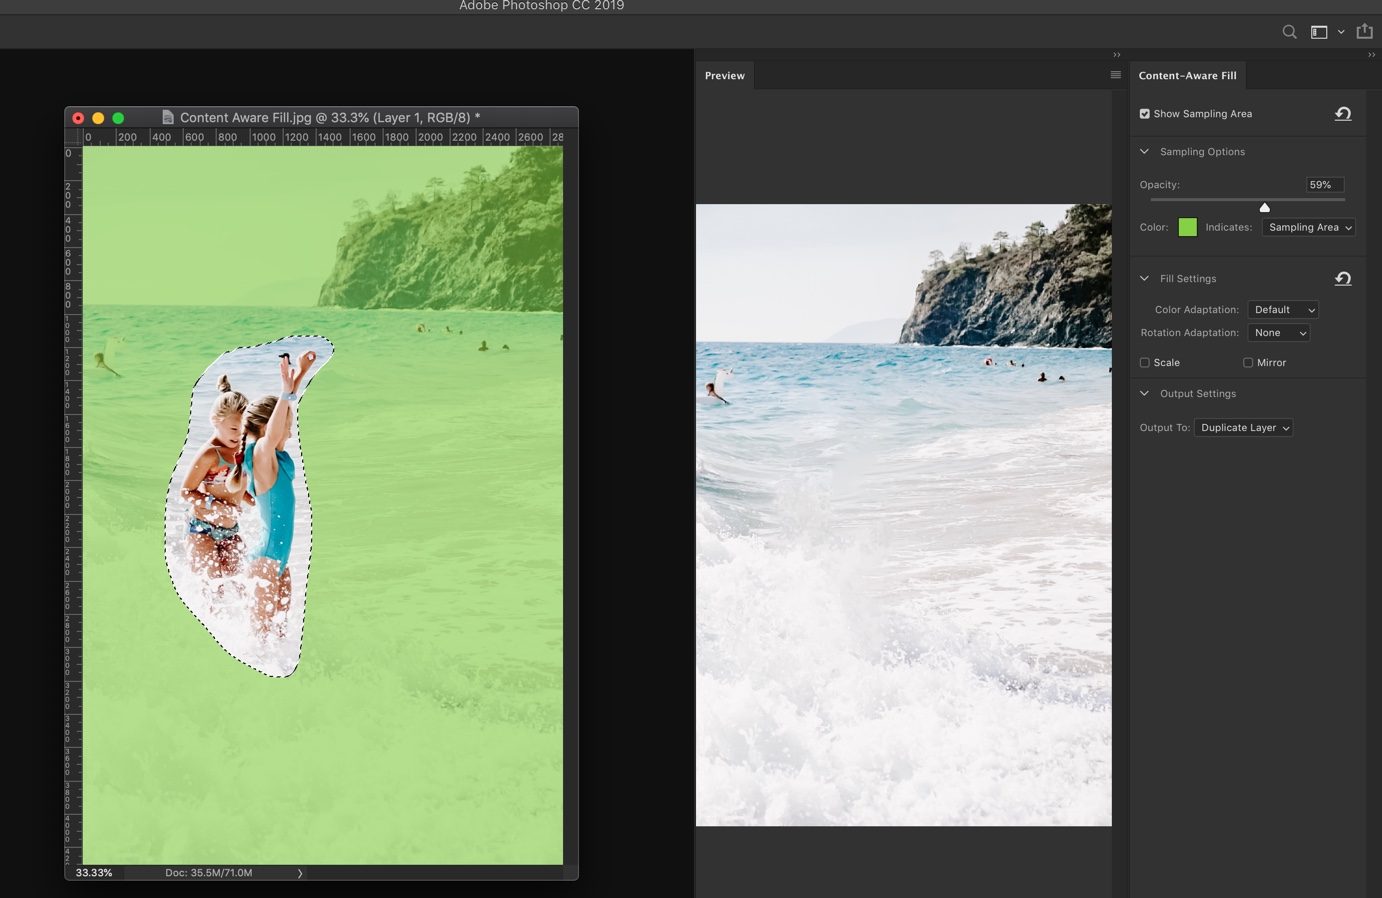 17 - The Ultimate Guide to Remove People in Photoshop